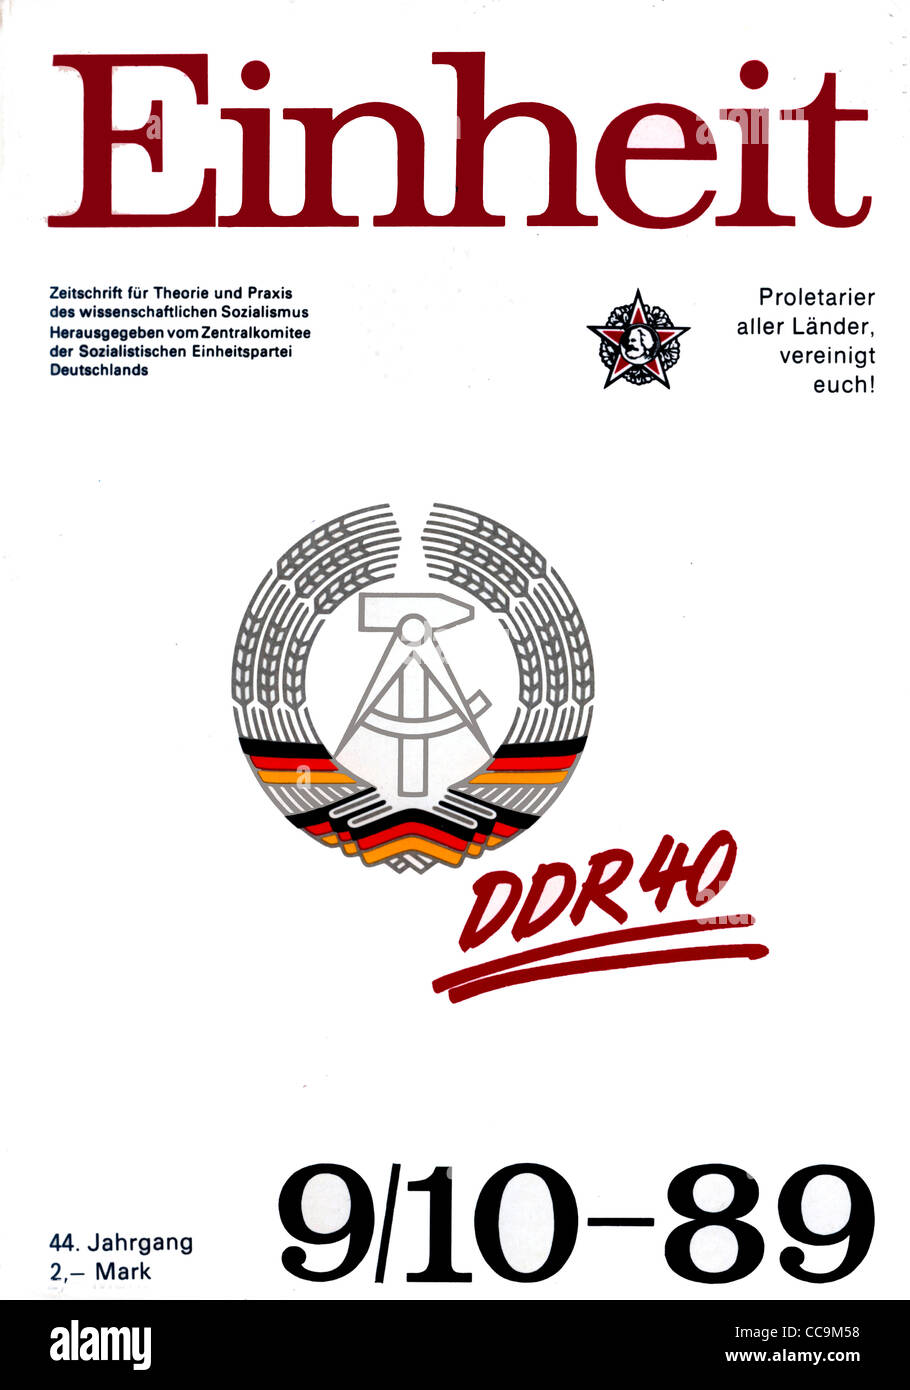 Political magazine of the official party SED of the GDR of October 1989. - Stock Image